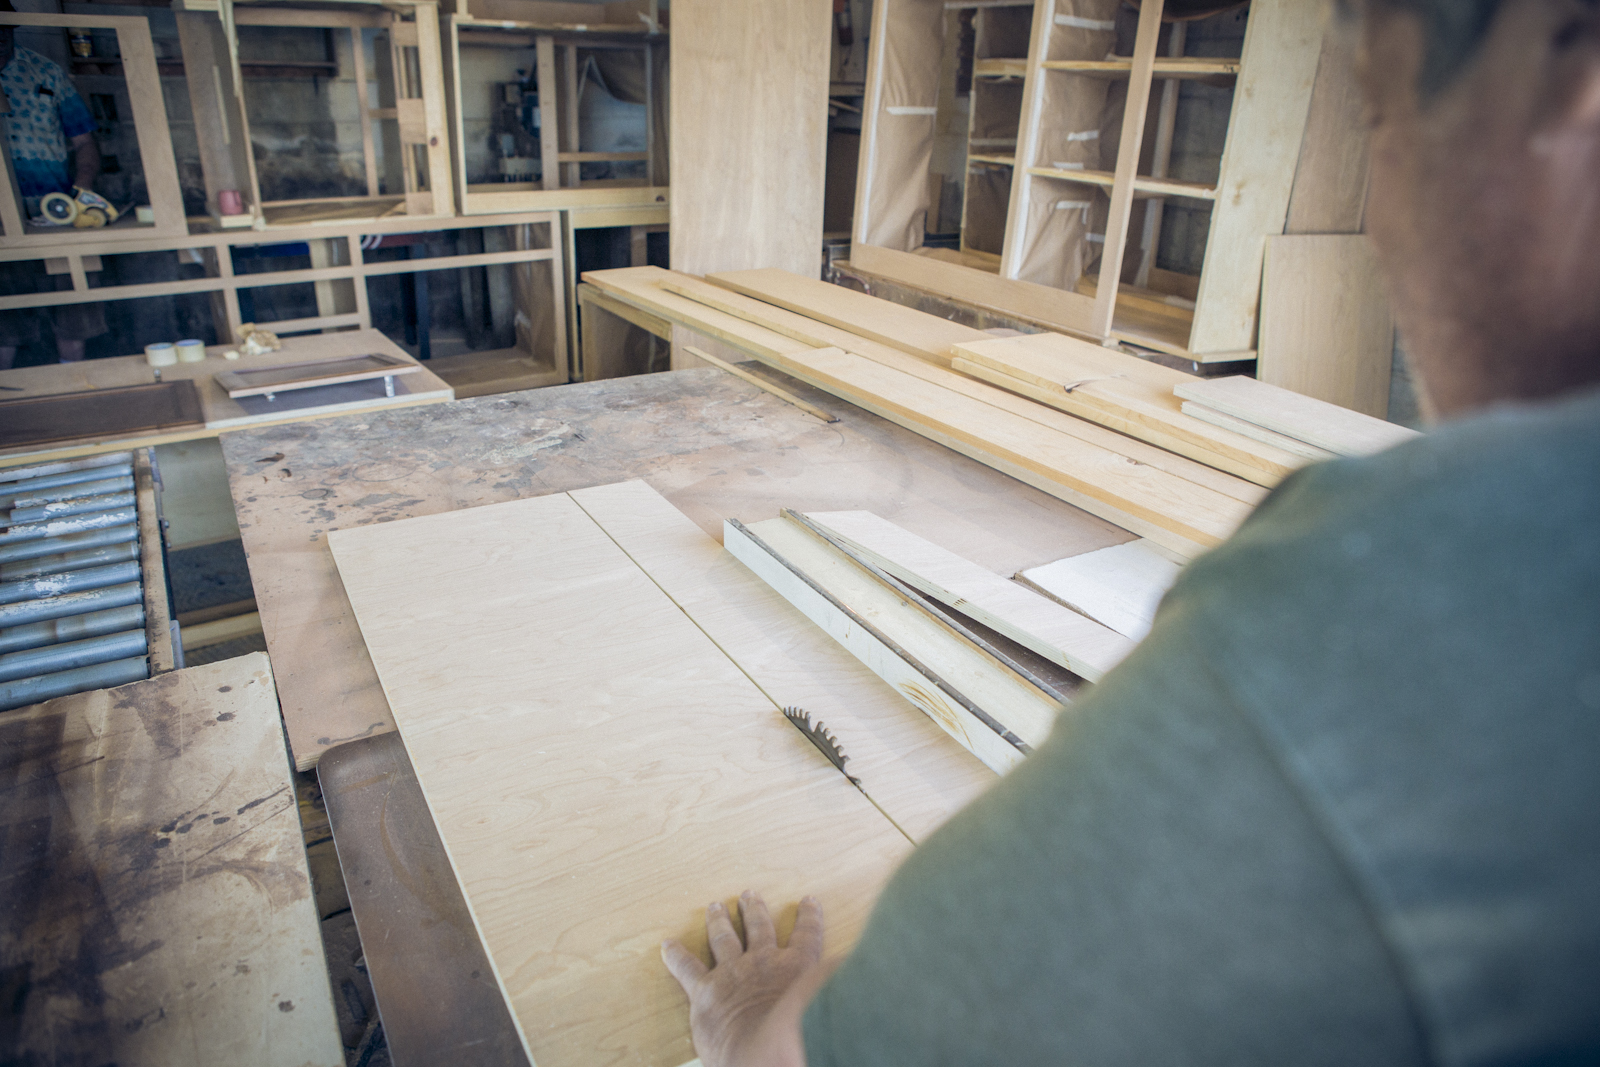 The Process Of Designing, Making, And Installing Custom Cabinetry